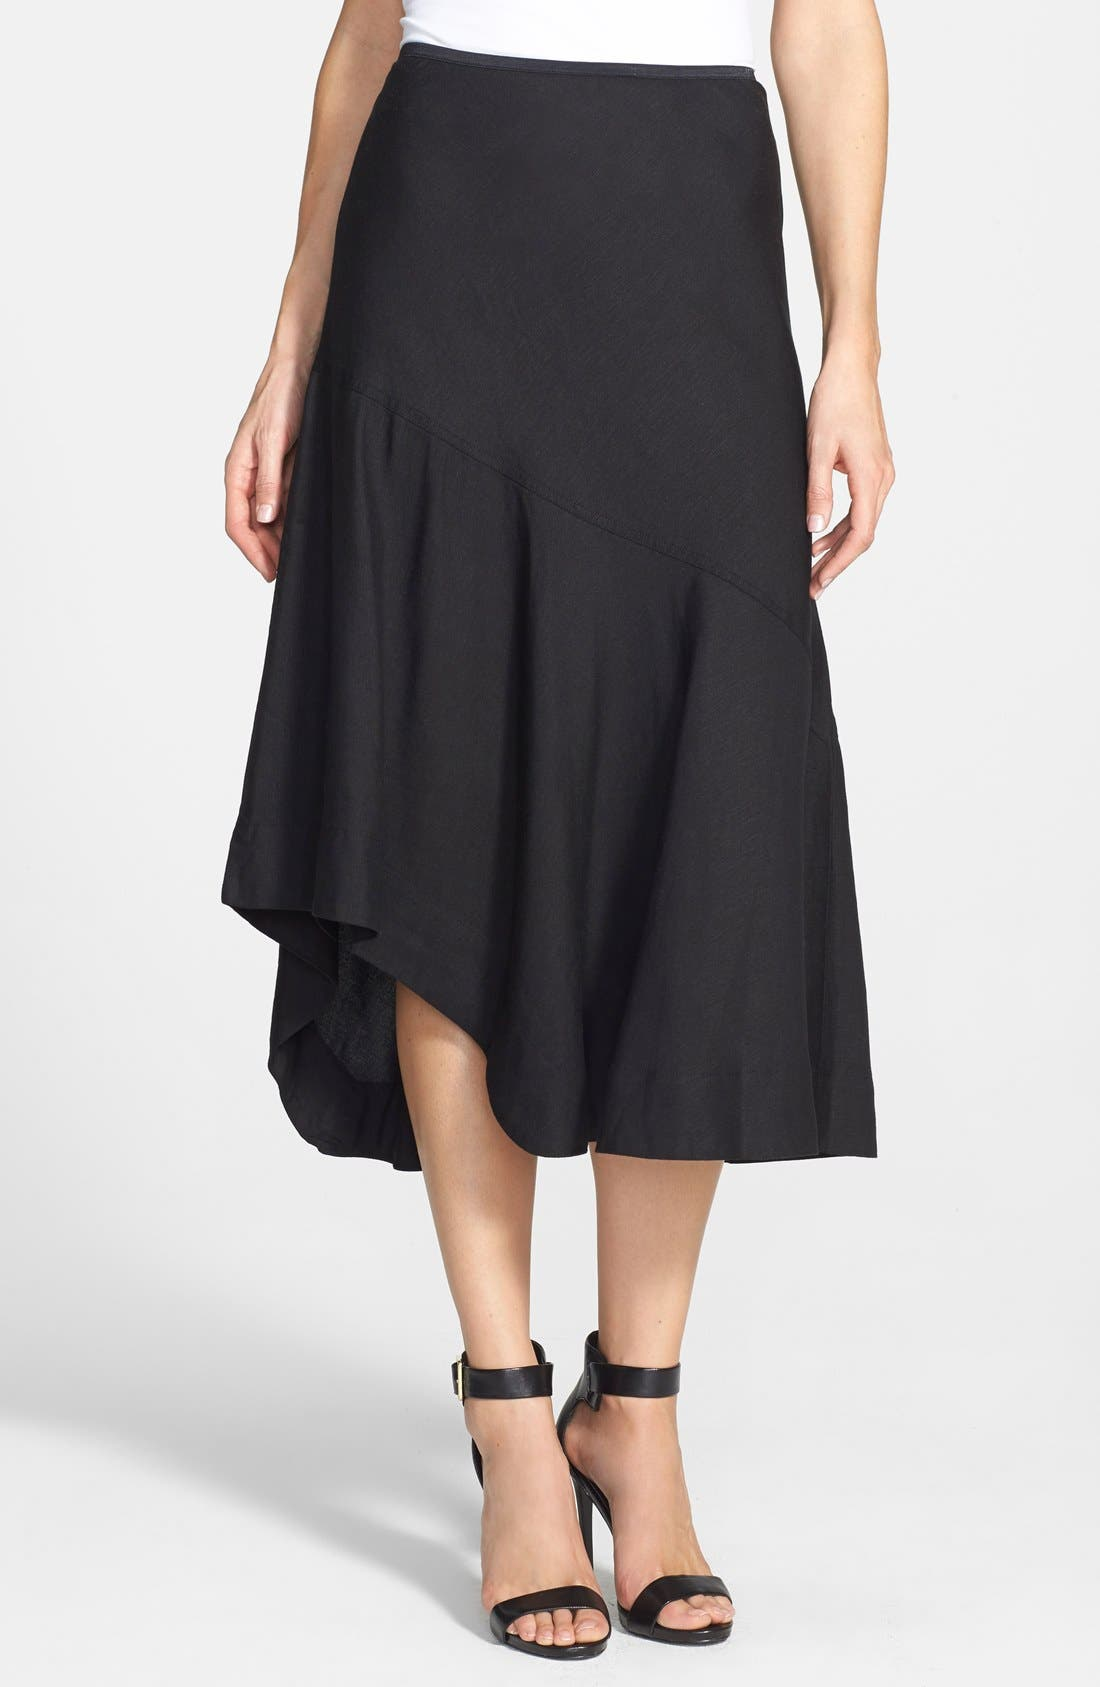 NIC+ZOE 'The Long Engagement' Midi Skirt, Main, color, 004